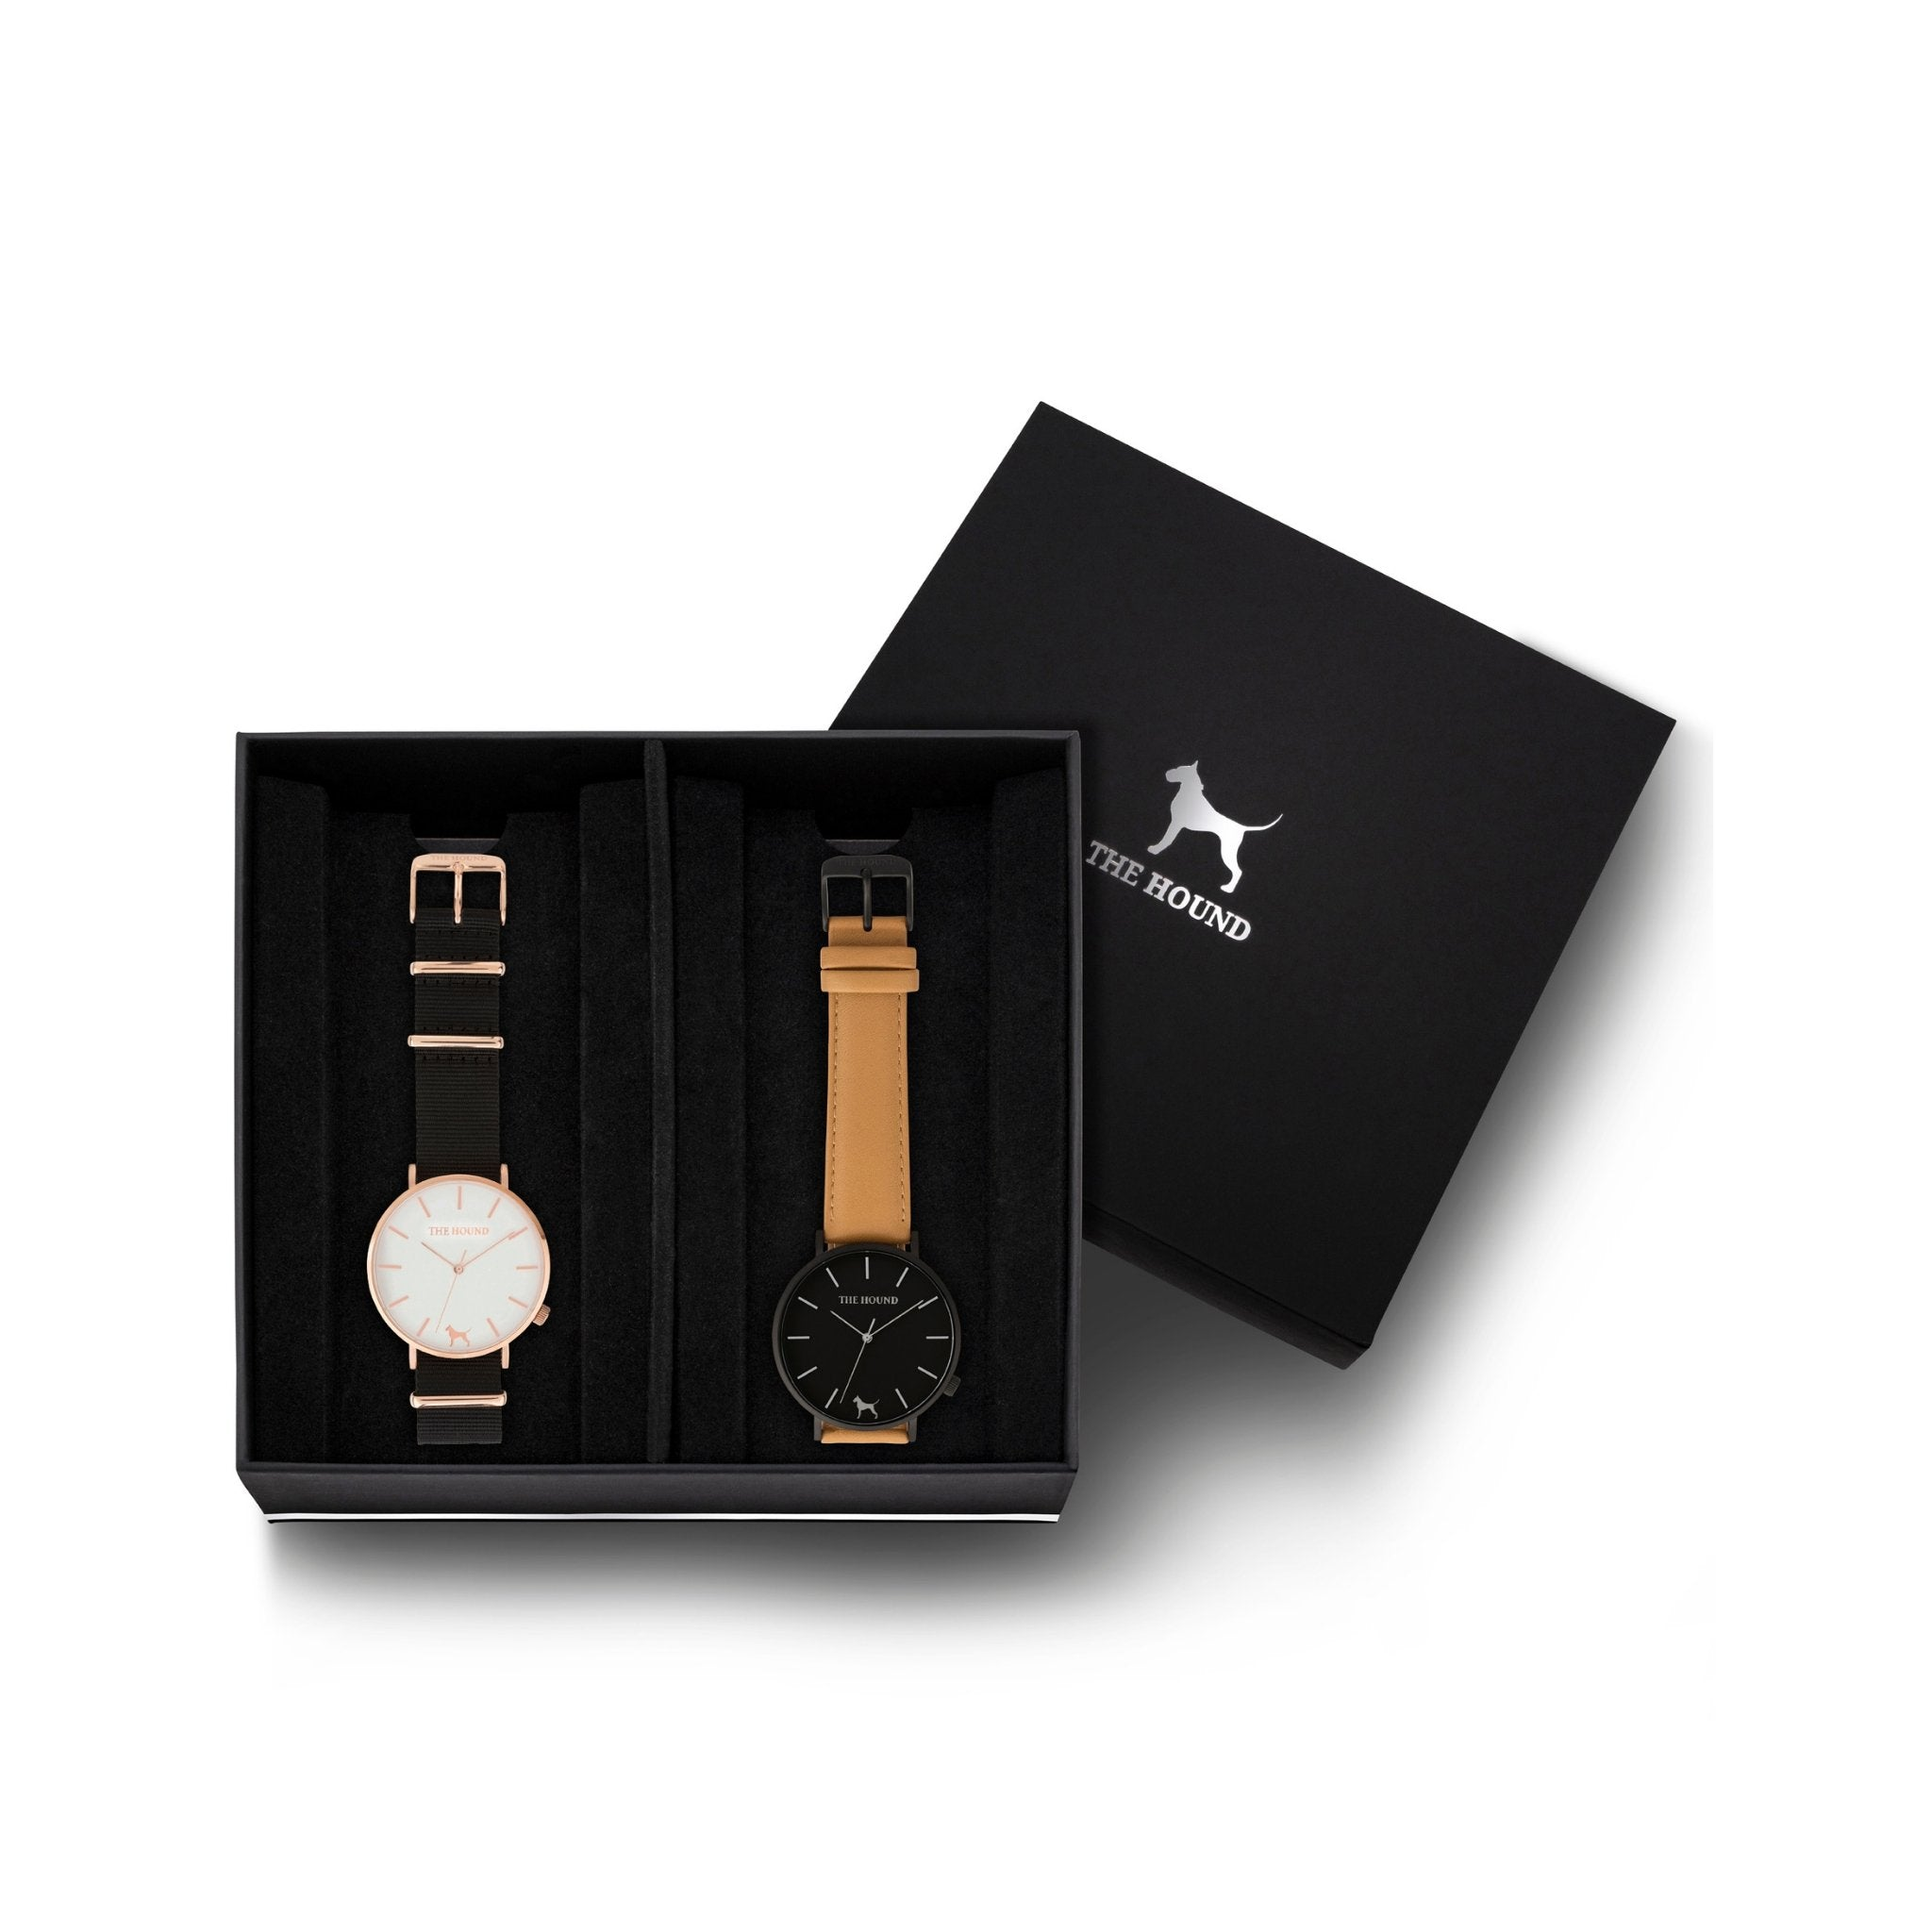 Custom gift set - Rose gold and white watch with black nato band and a matte black and black watch with stitched camel genuine leather band